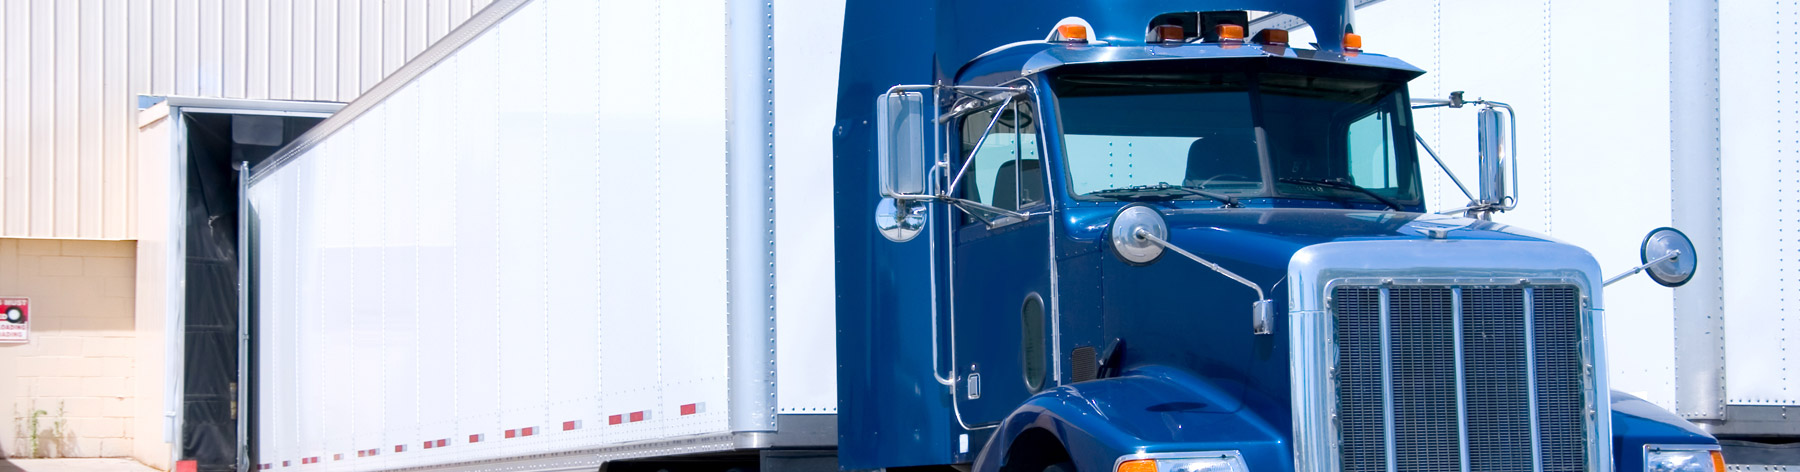 Recruit Truck Drivers at Truck Driving Jobs Online